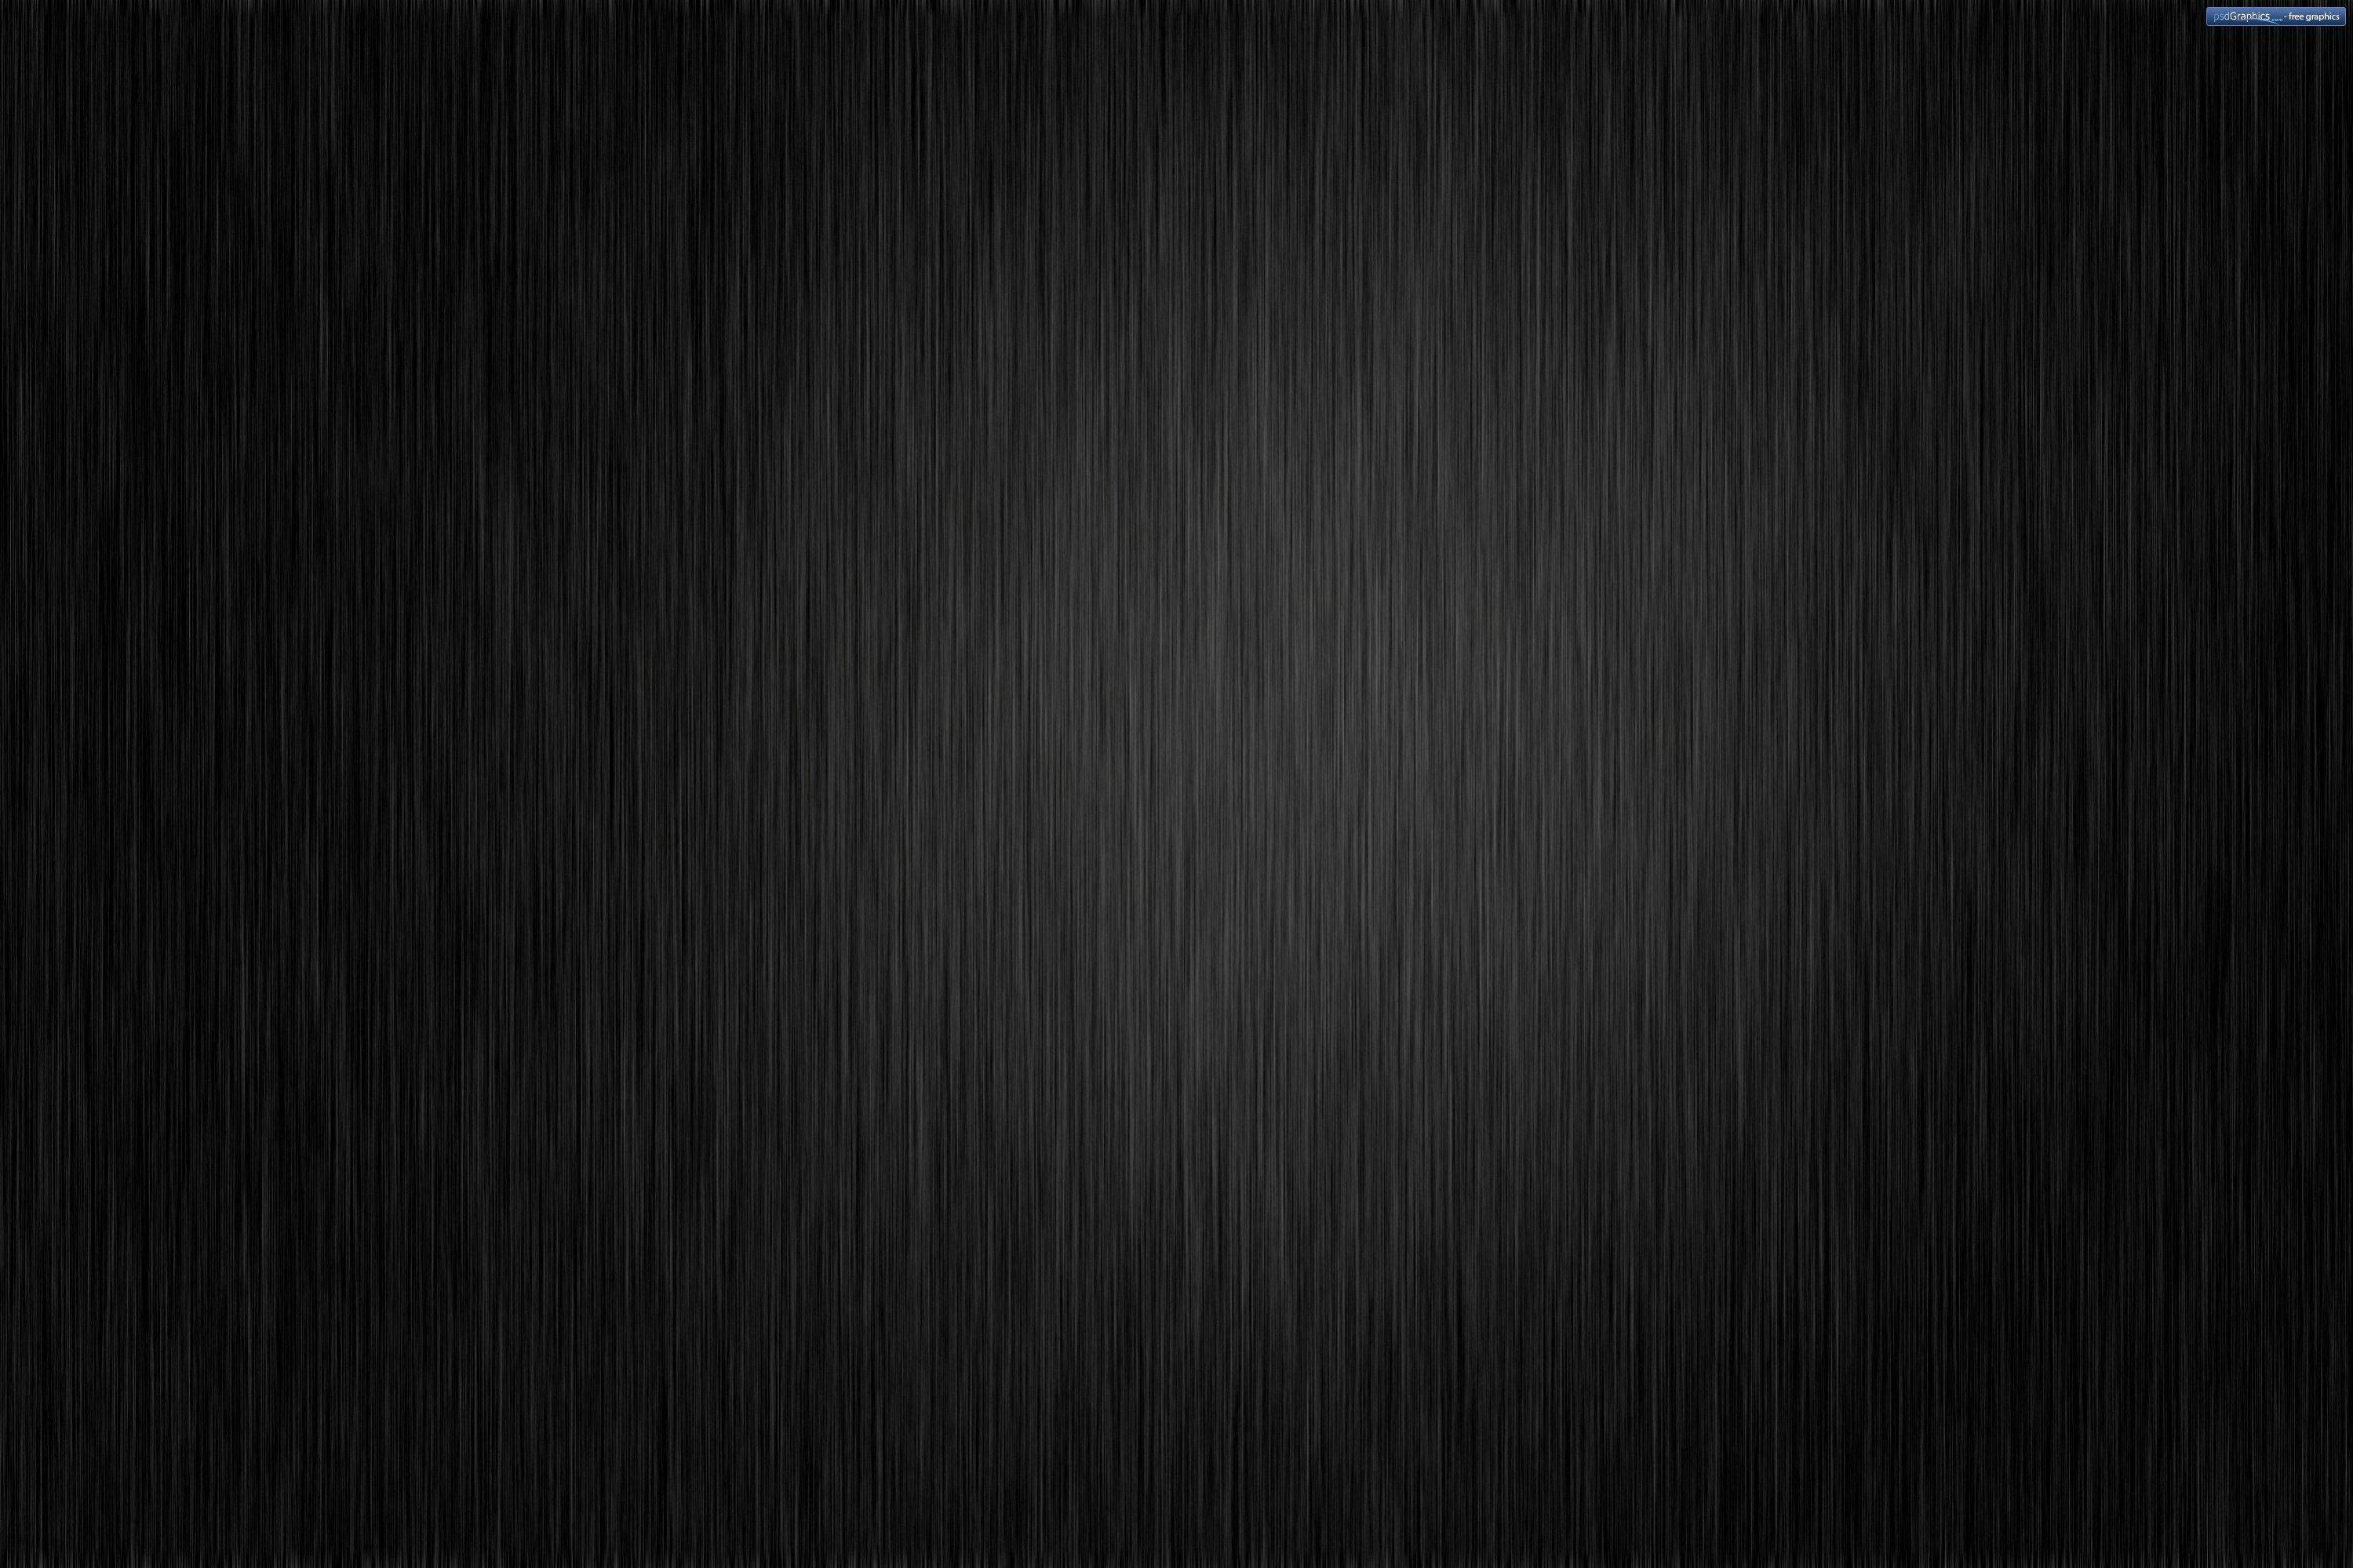 Black AMOLED Wallpaper WallpaperSafari